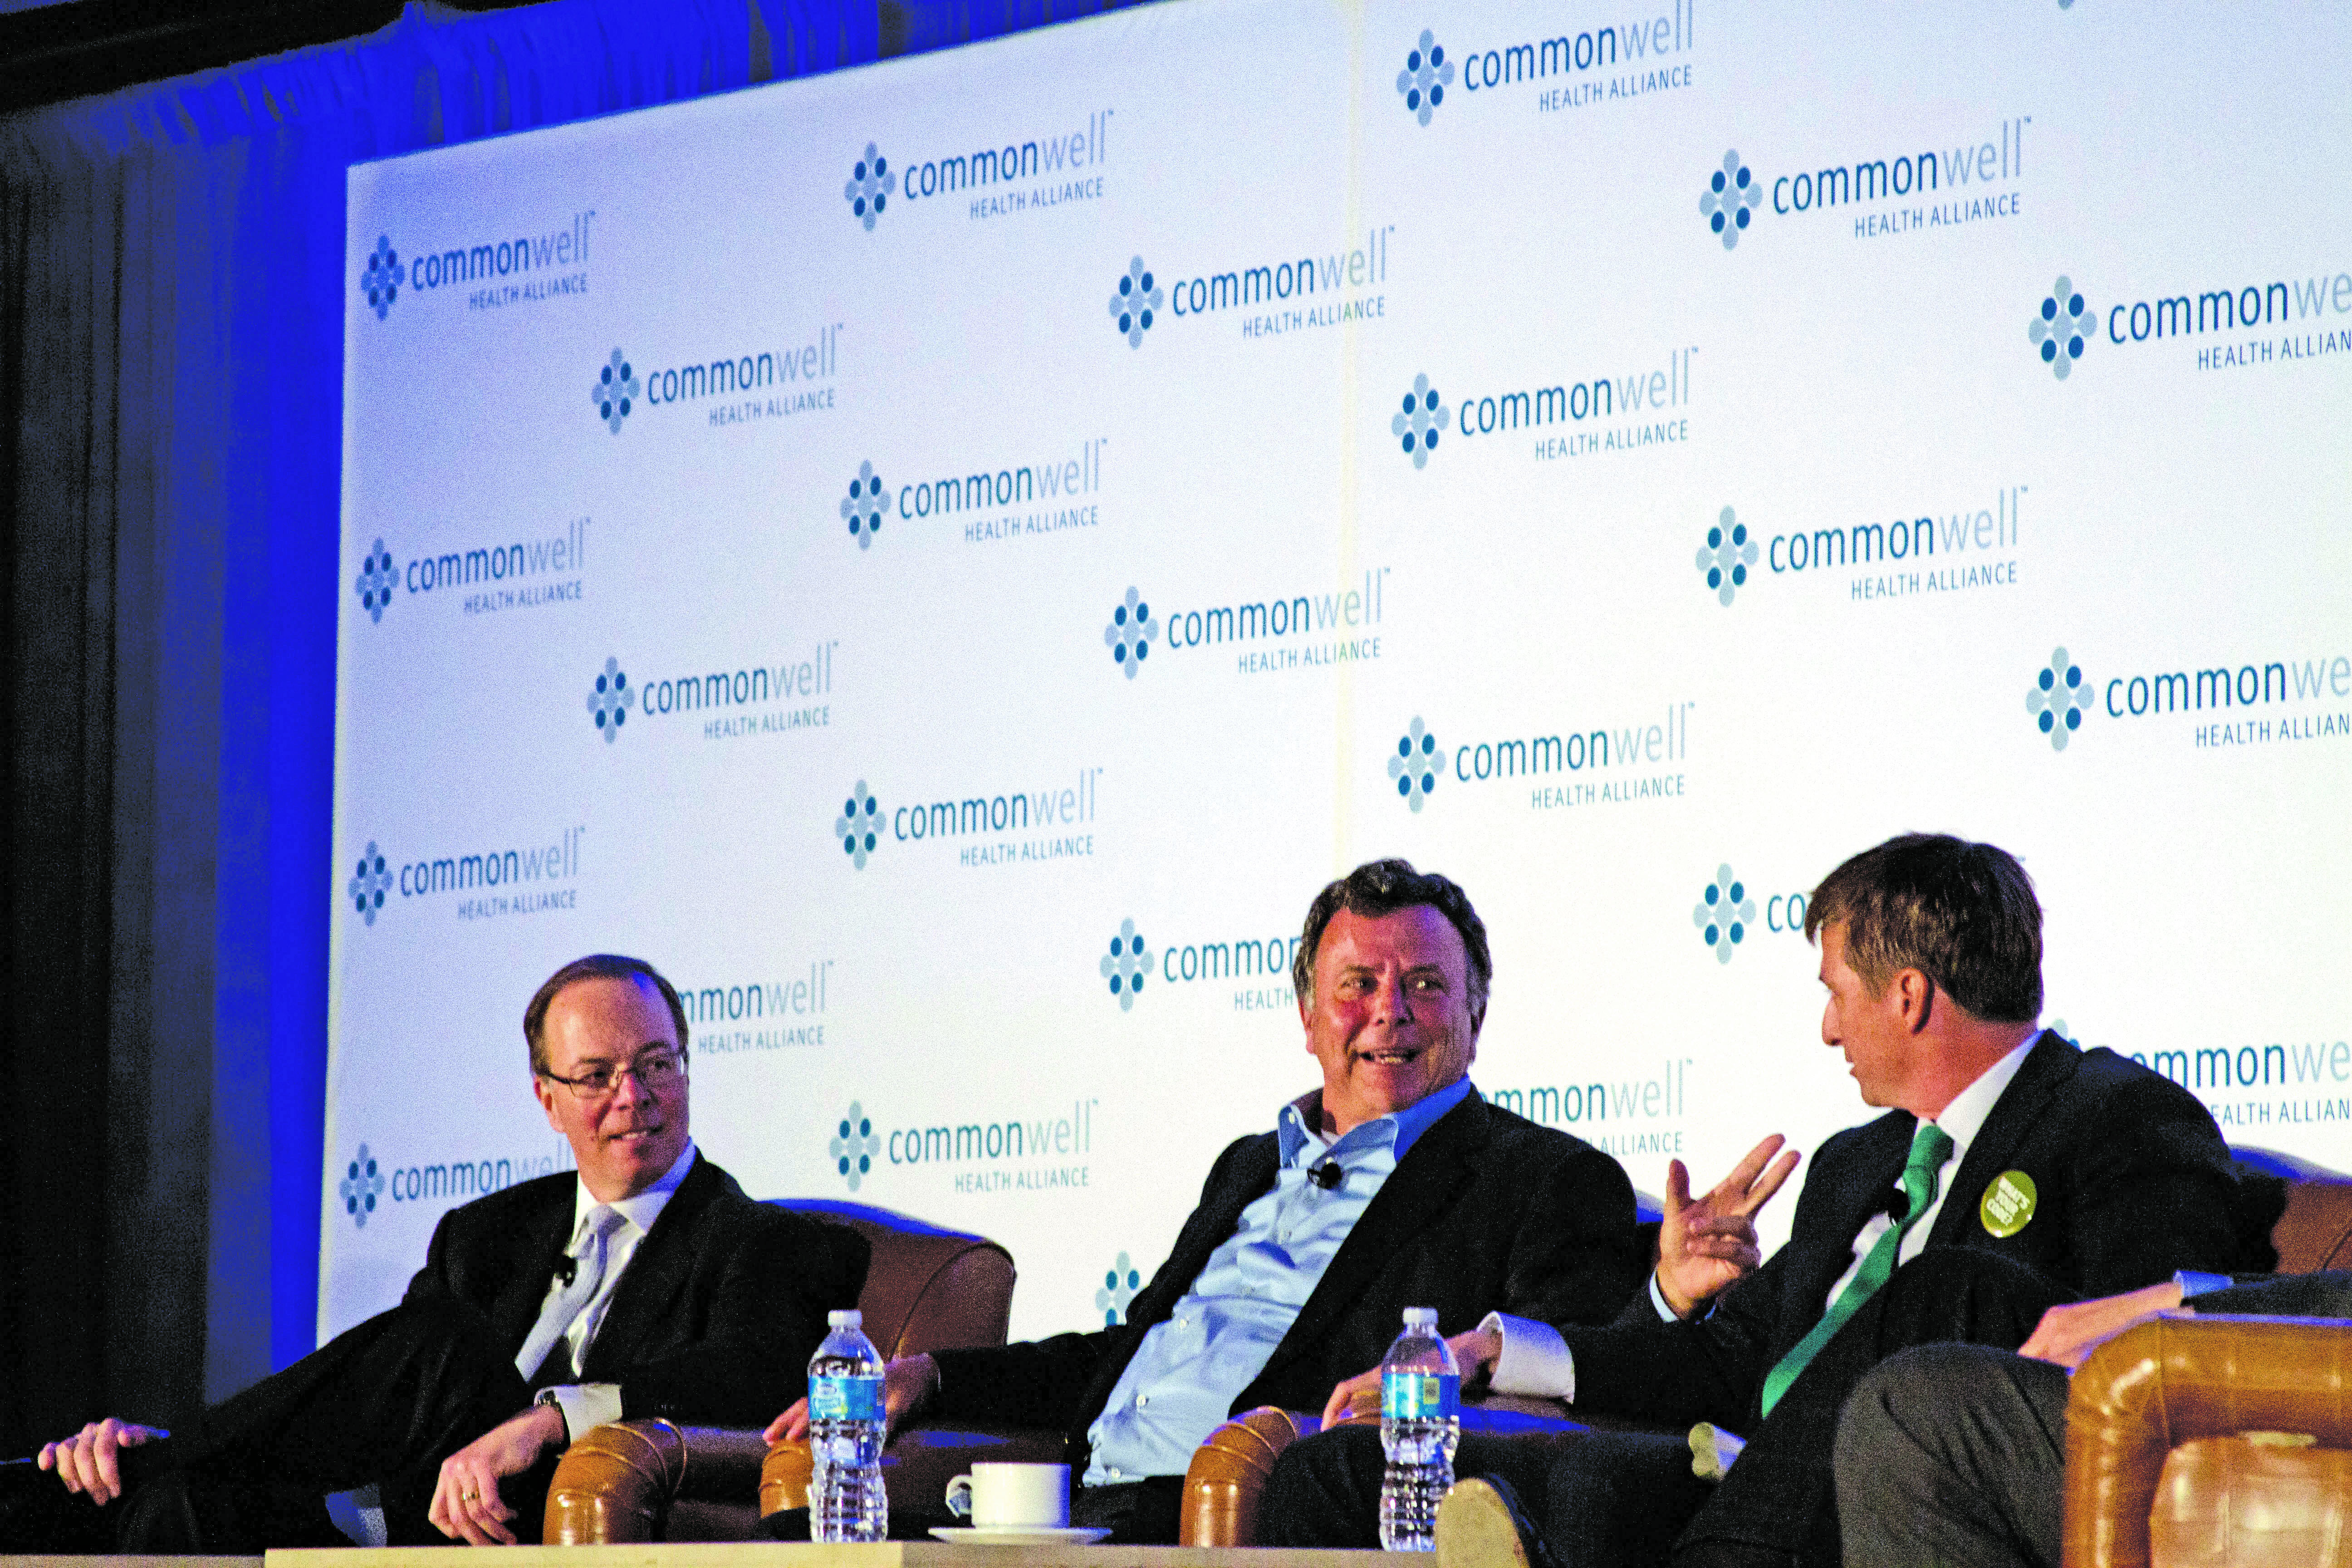 The CommonWell Health Alliance says it's committed to data liquidity.